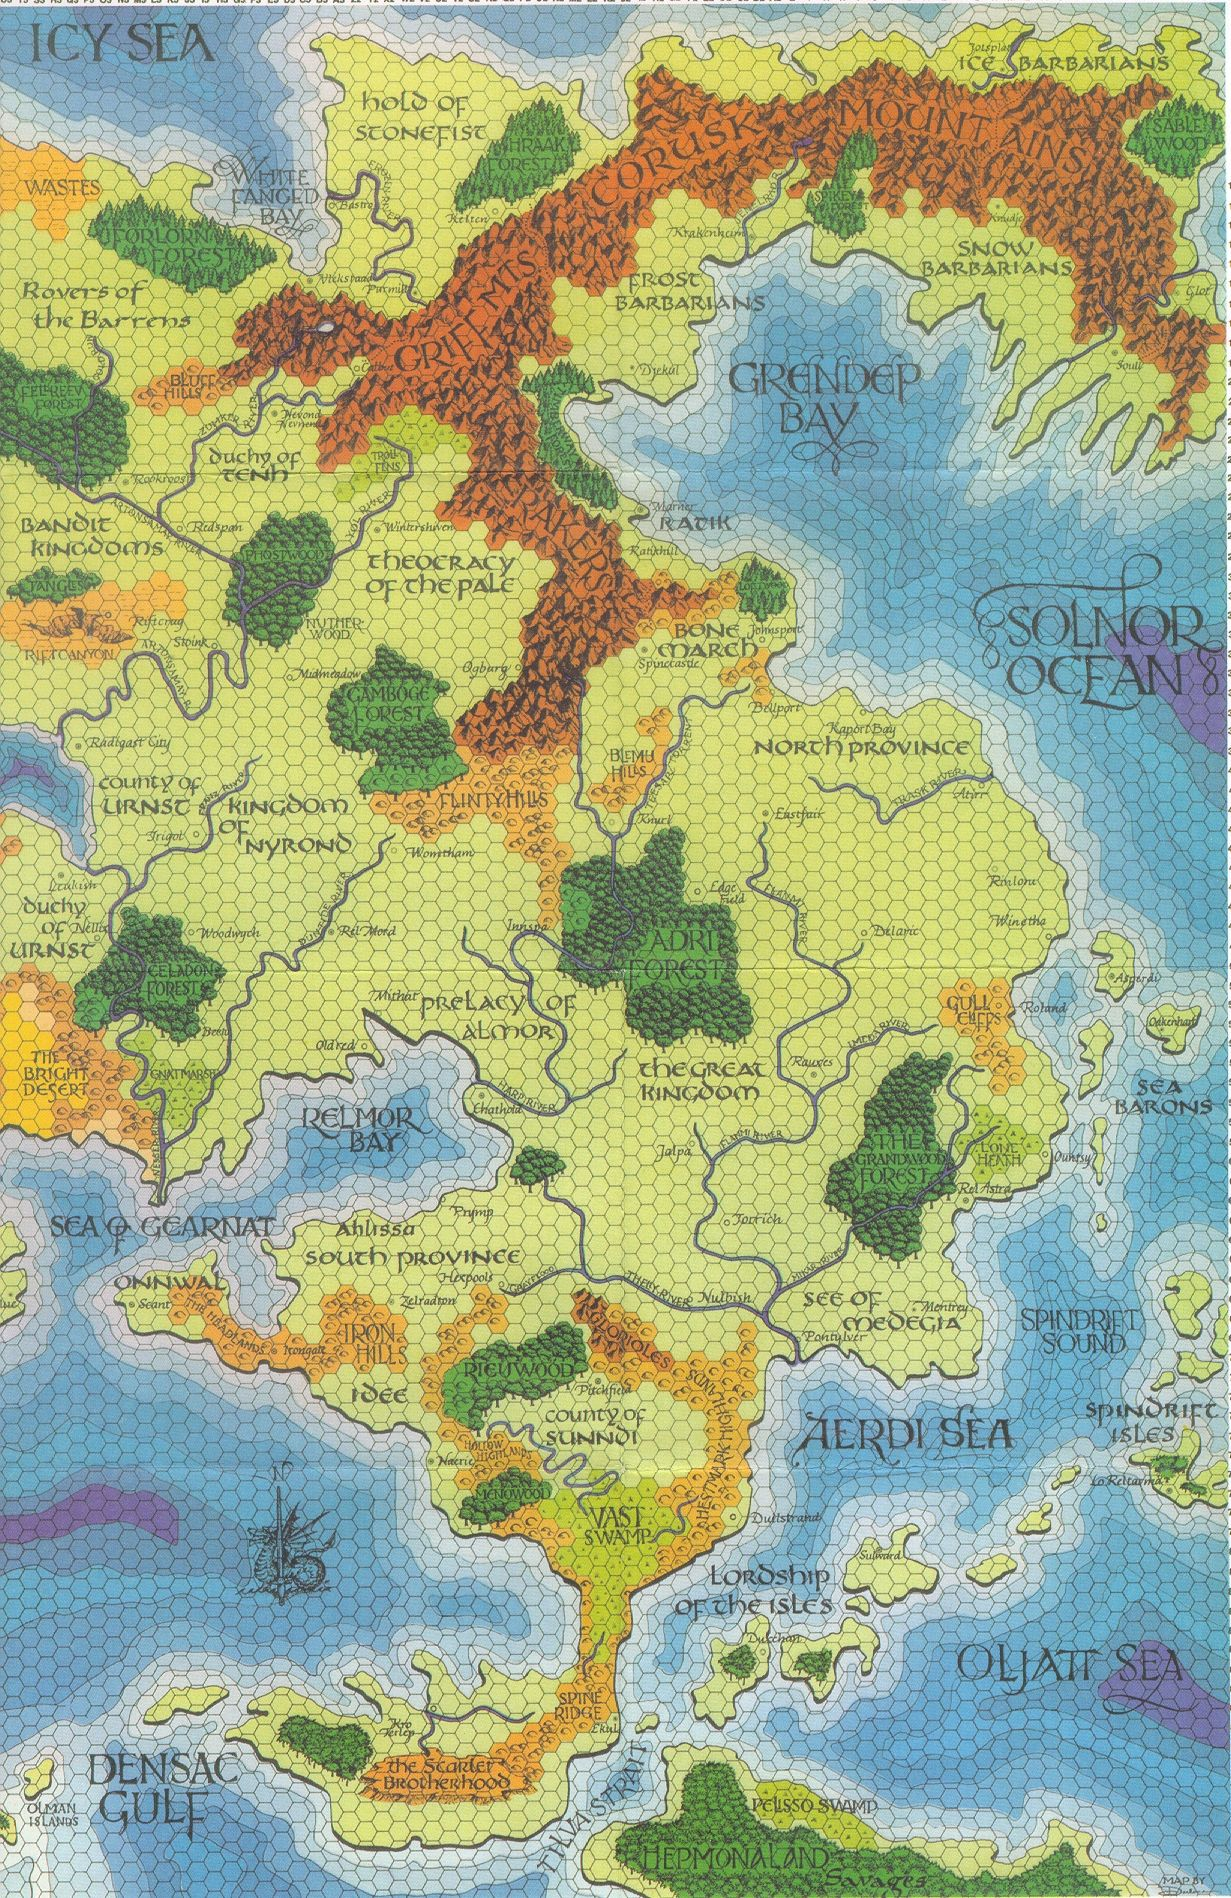 Pt 2 of the Greyhawk map by Darlene | Roleplaying Games | Pinterest ...